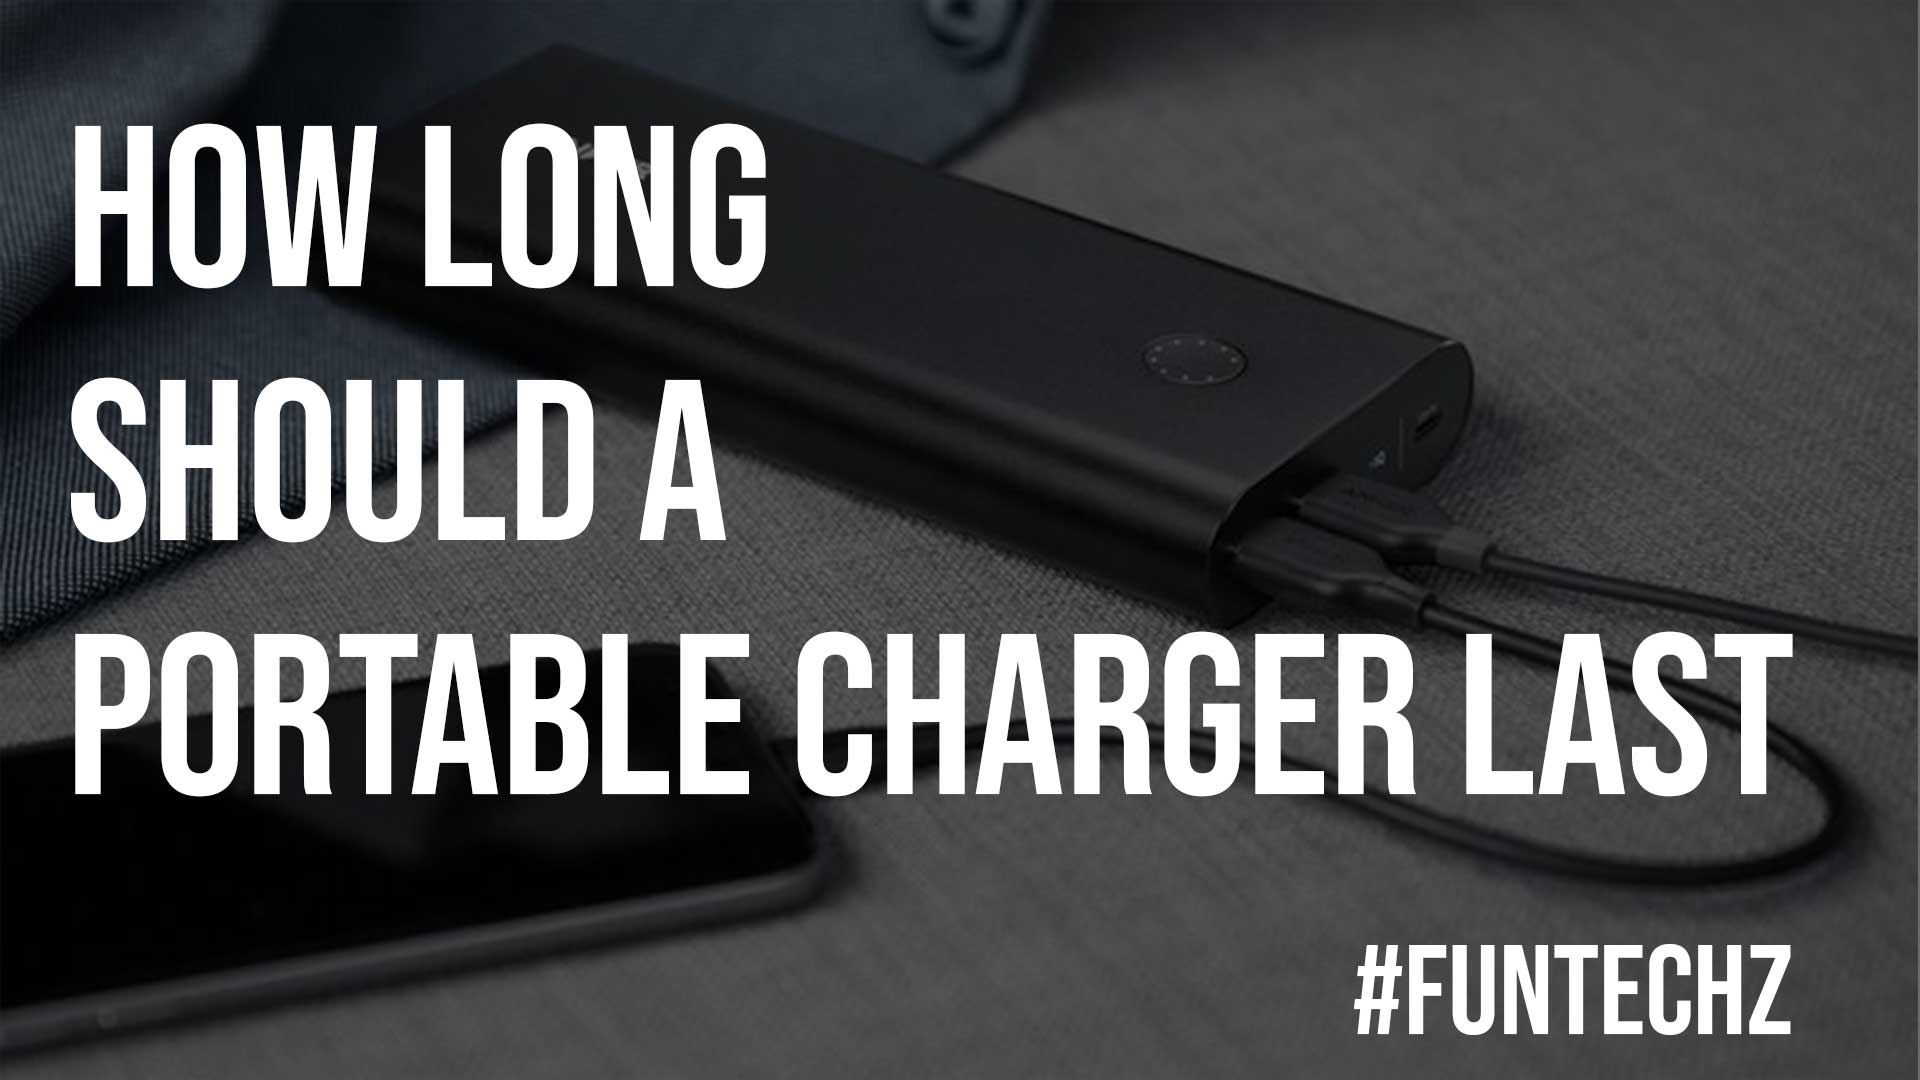 How Long Should a Portable Charger Last